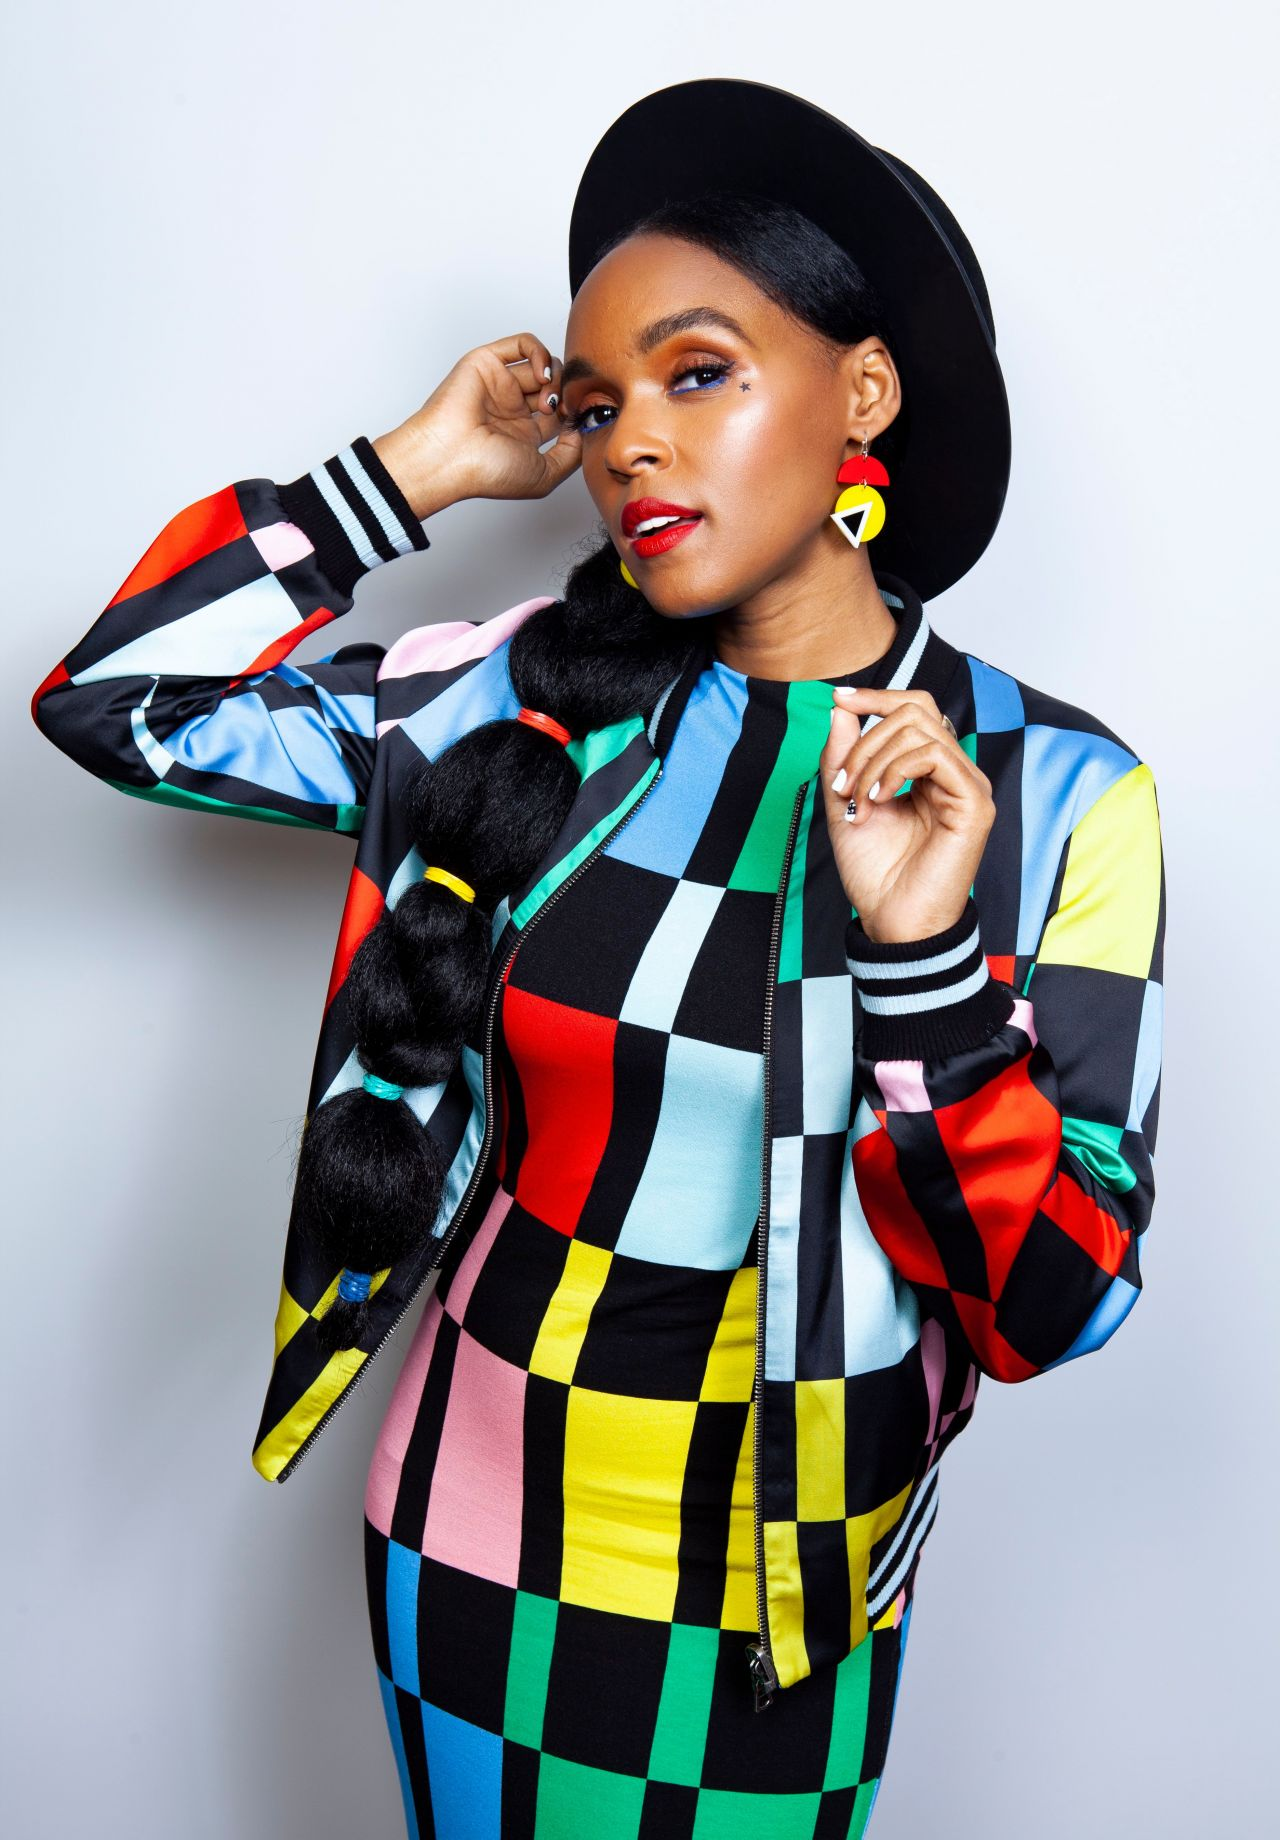 """- Janelle Monae's Dirty Computer is still in heavy rotation. I've liked her when she first burst on the scene with Big Boi's """"Purple Ribbon"""" Crew. I loved her approach to the industry by having her own signature look in the Black & White"""" rocking a pompadour. Janelle tackles more social issues as she always has on previous projects. The first single off Dirty Computer """"Make Me Feel"""" got my attention instantly. It reminds me of Prince's """"Kiss""""!! My other favorite tracks are """"Django Jane"""", """"I Like That"""" & """"I Got The Juice"""" featuring the producing genius Pharrell Williams. Janelle is currently on tour overseas."""